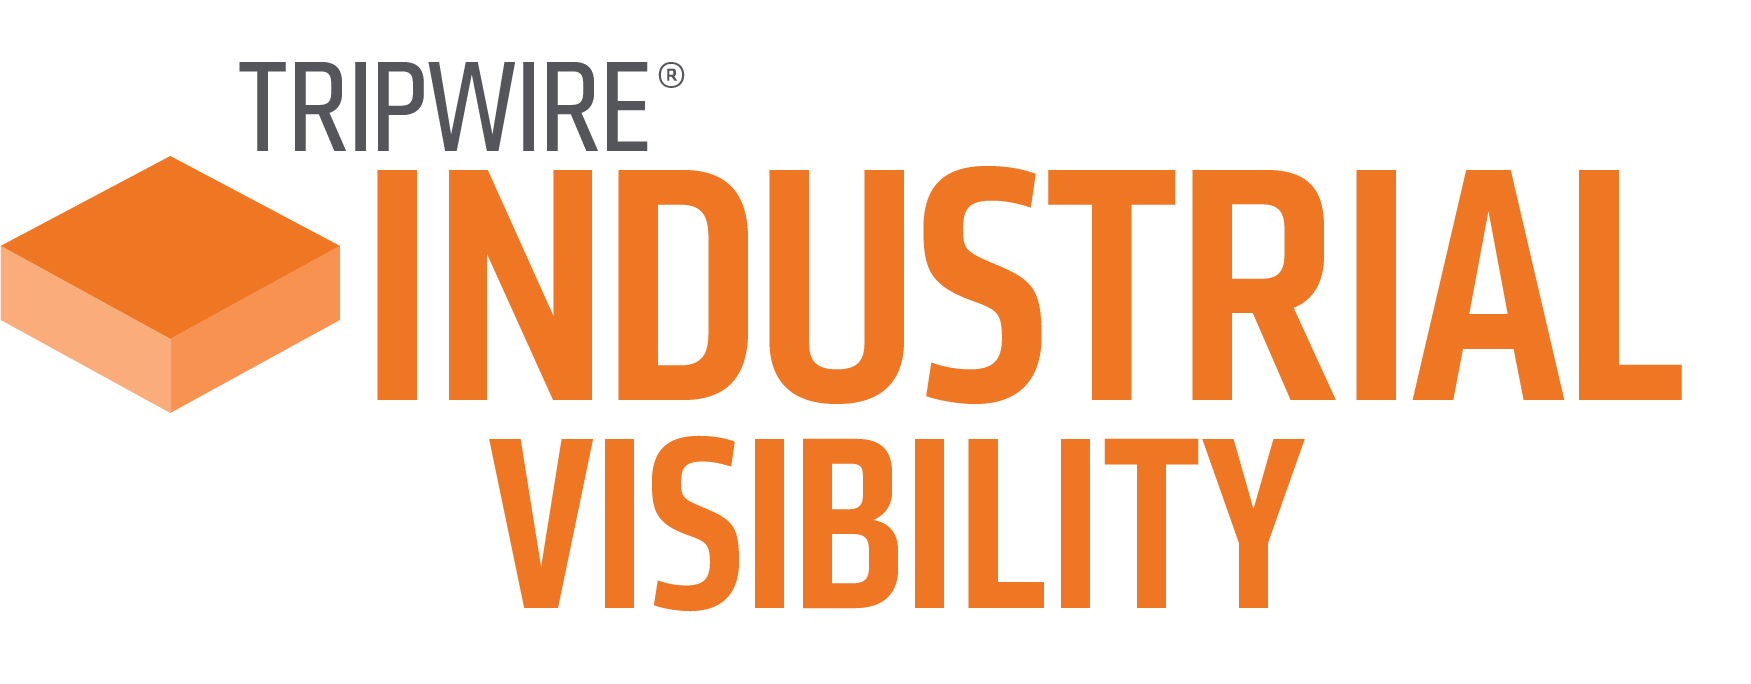 Tripwire Industrial Visibility Logo